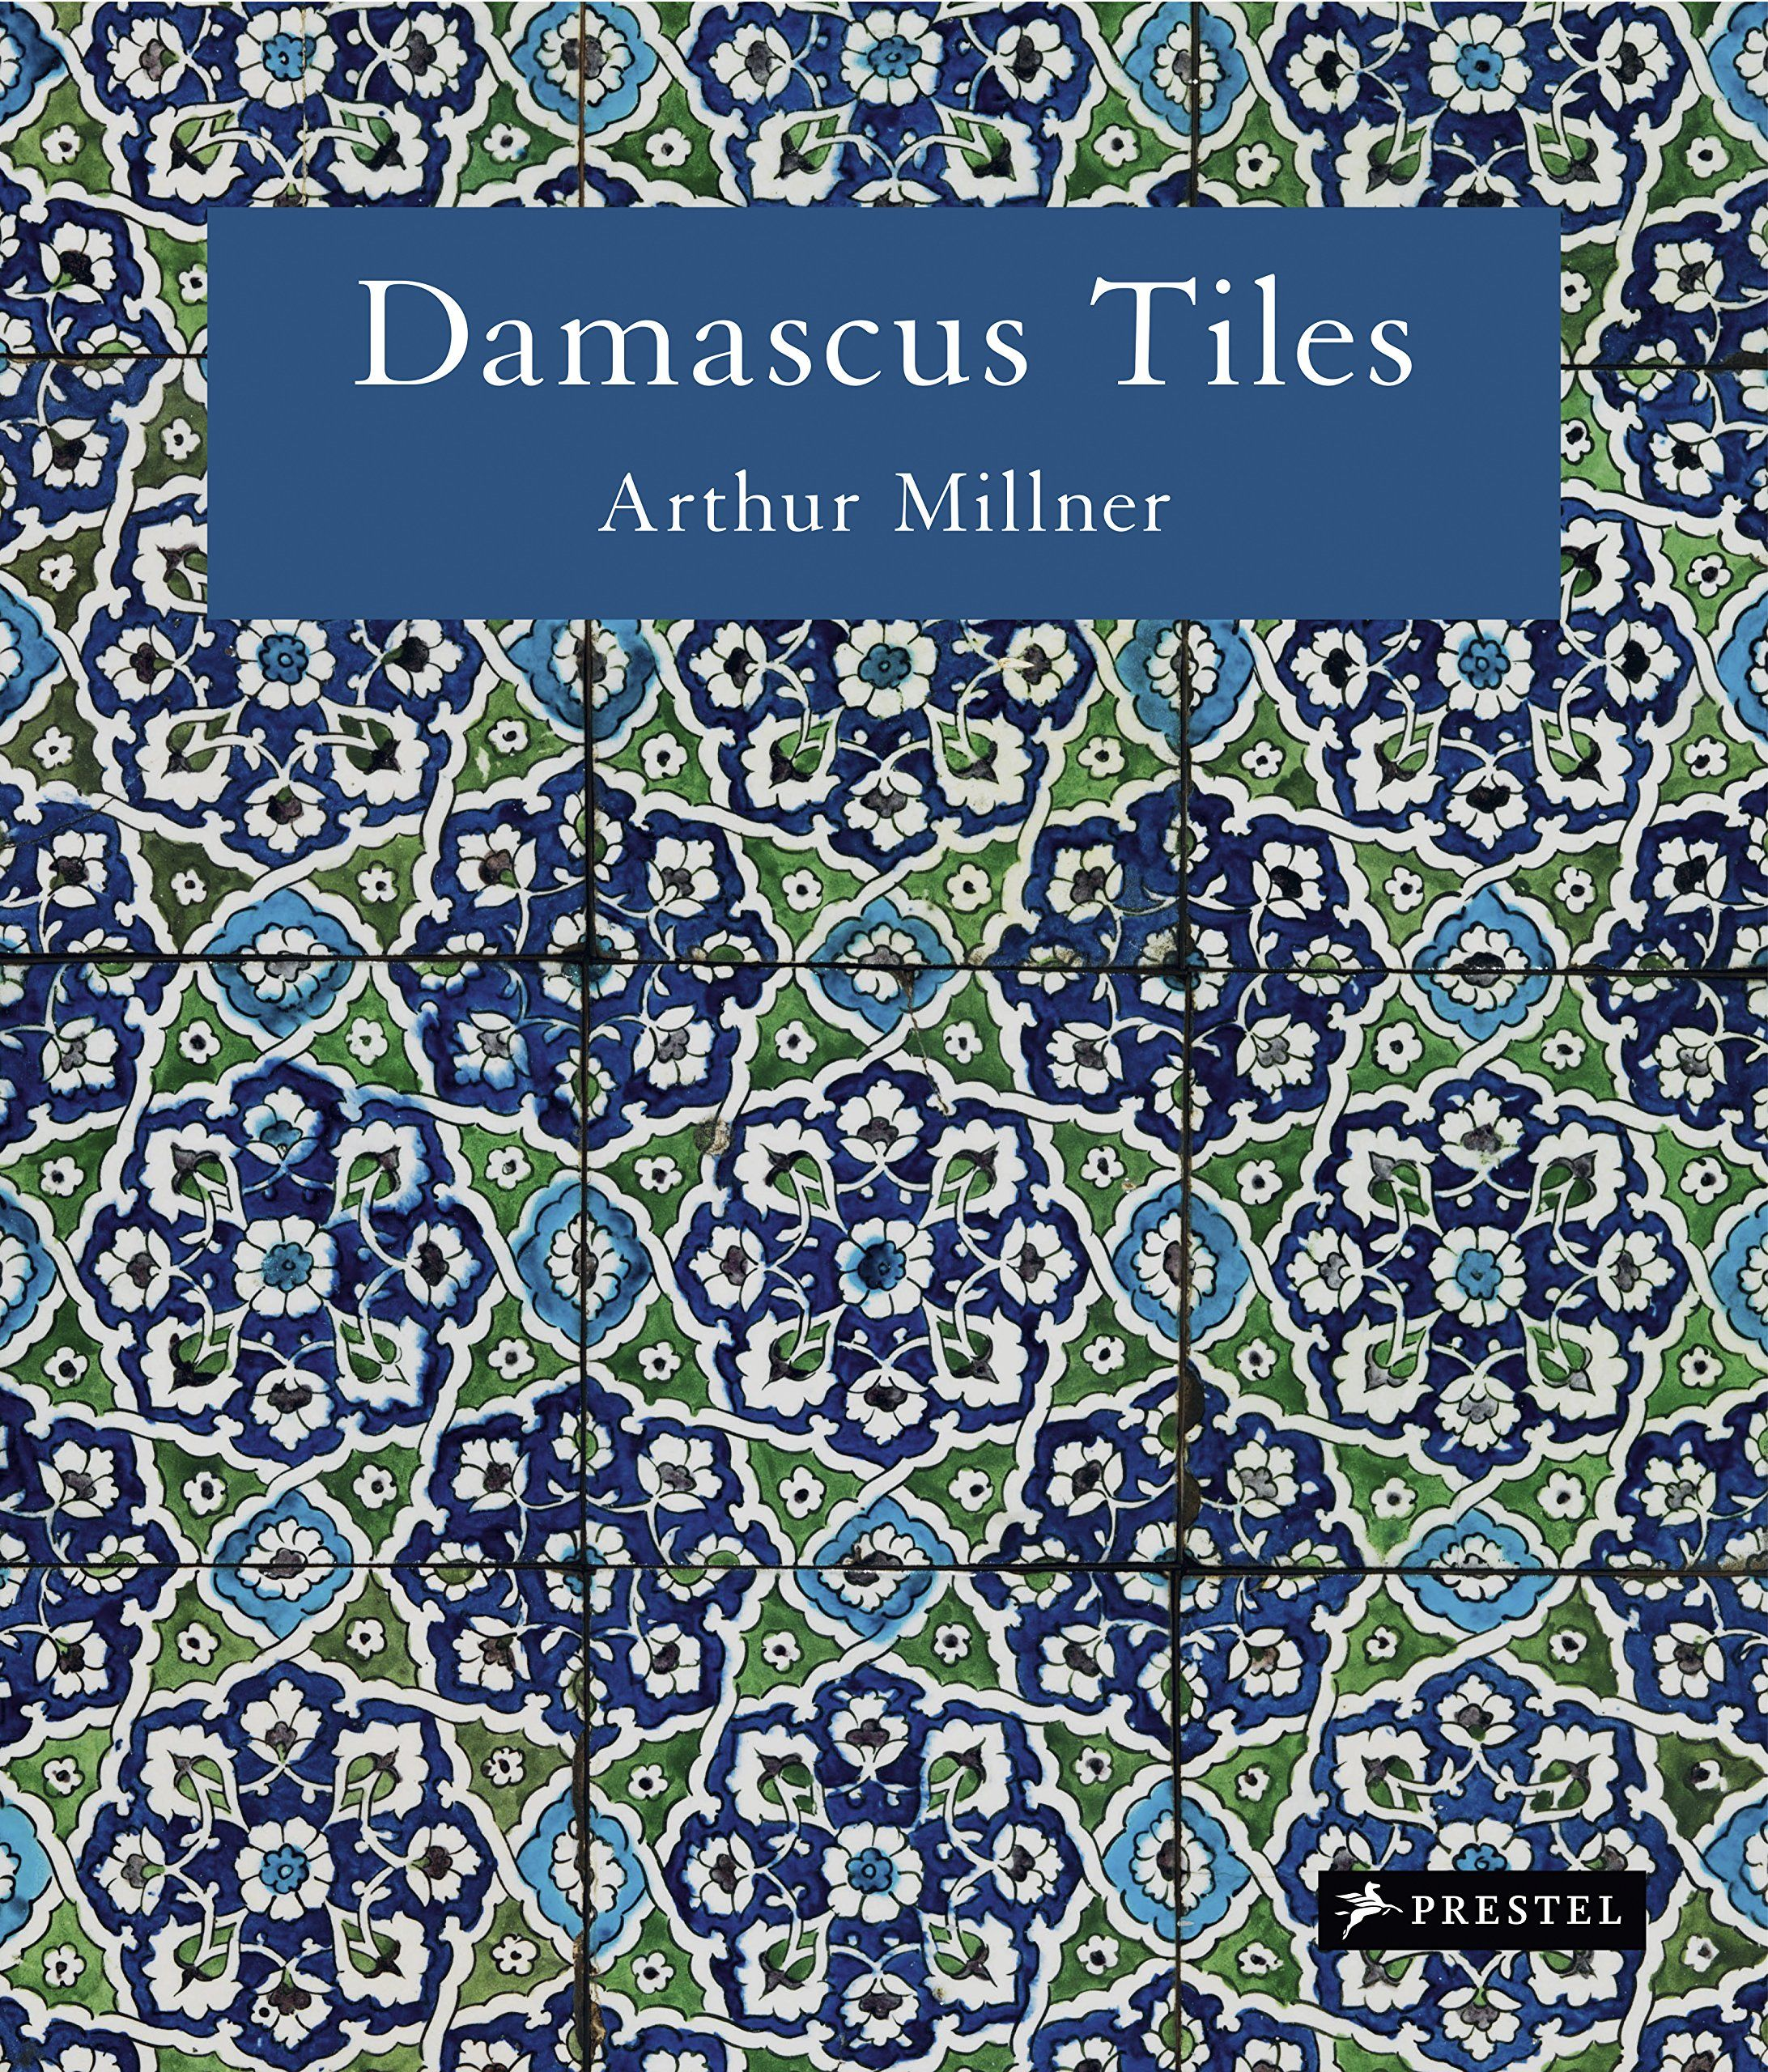 Damascus tiles mamluk and ottoman architectural ceramics from syria damascus tiles mamluk and ottoman architectural ceramics from syriaarthur millner one of art historys previously overlooked treasures the vibrant dailygadgetfo Images